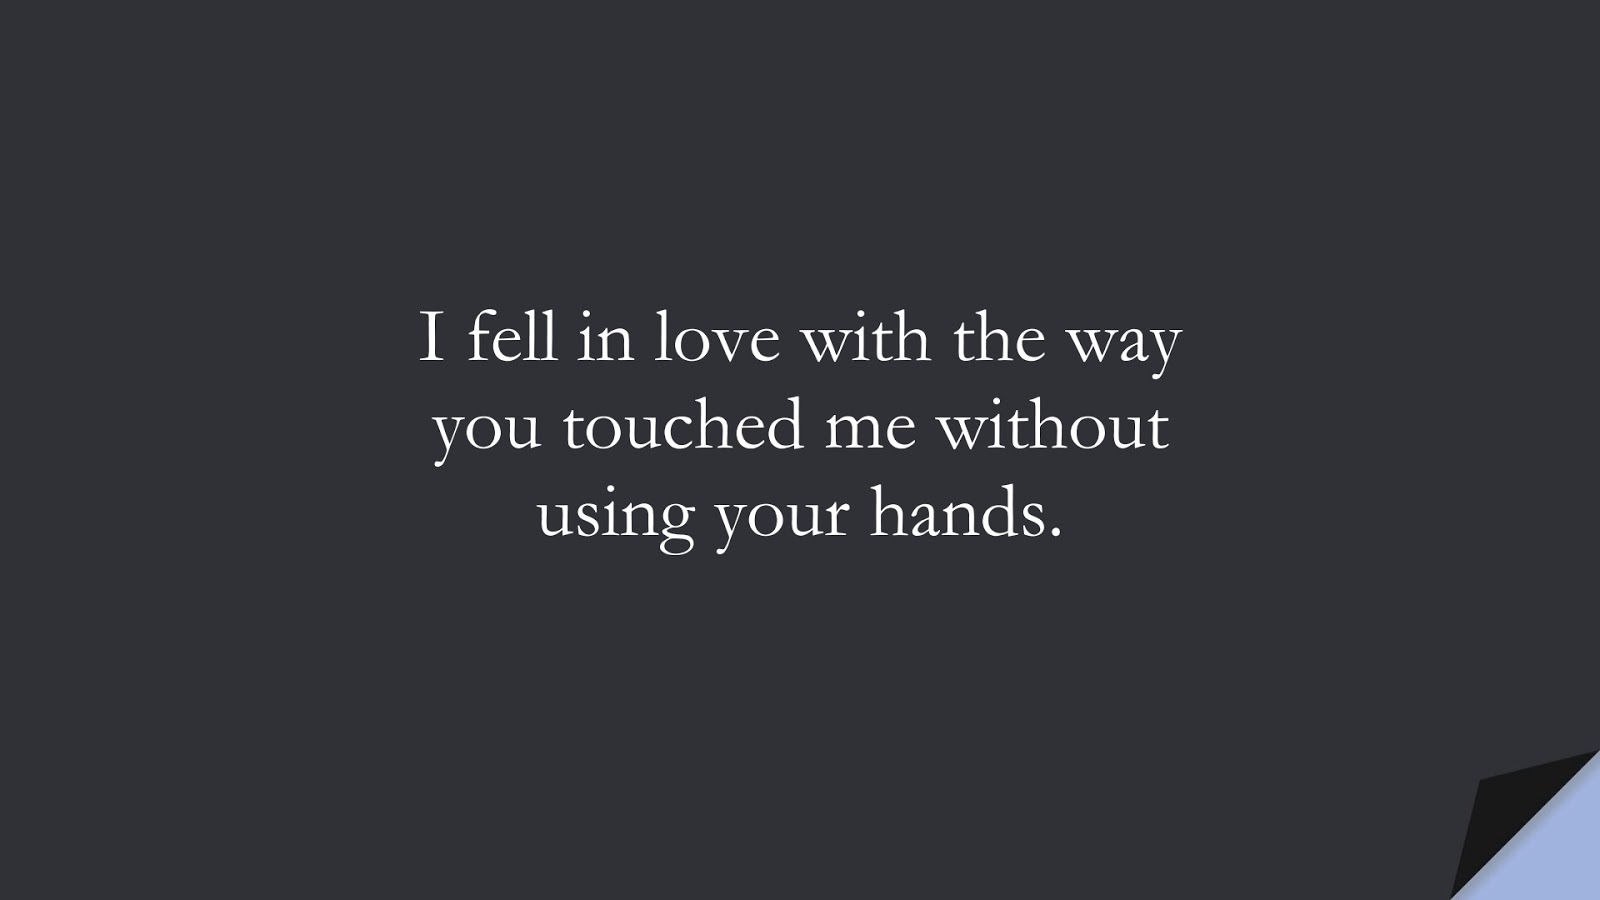 I fell in love with the way you touched me without using your hands.FALSE